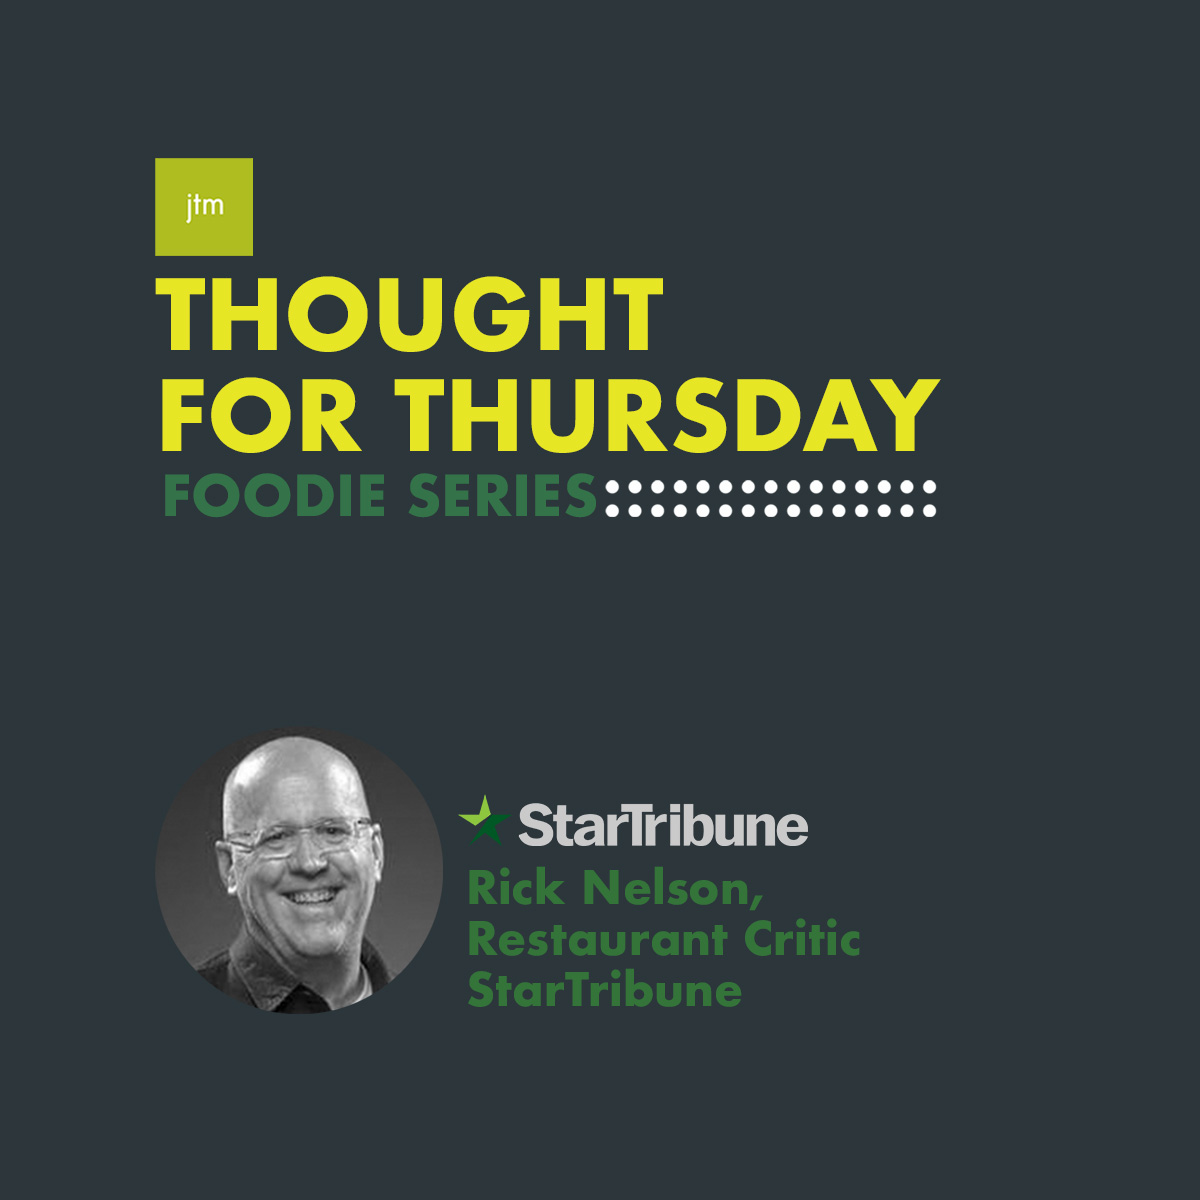 Thought For Thursday Foodie Series - Rick Nelson